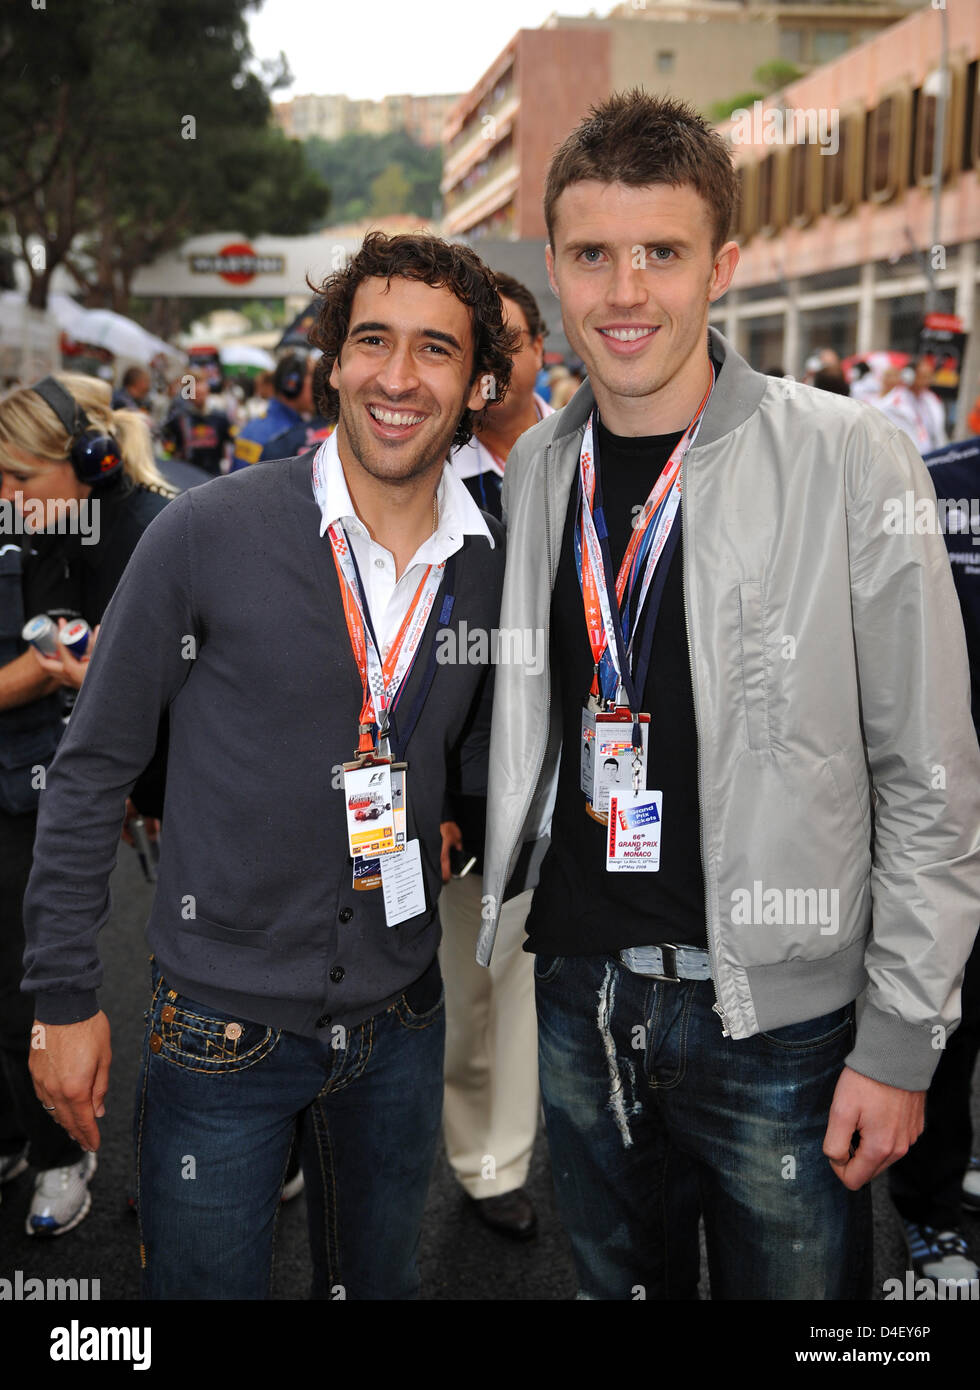 Michael Carrick (L) of English Premier League champion and UEFA Champions League winner Manchester United, and Raul - Stock Image